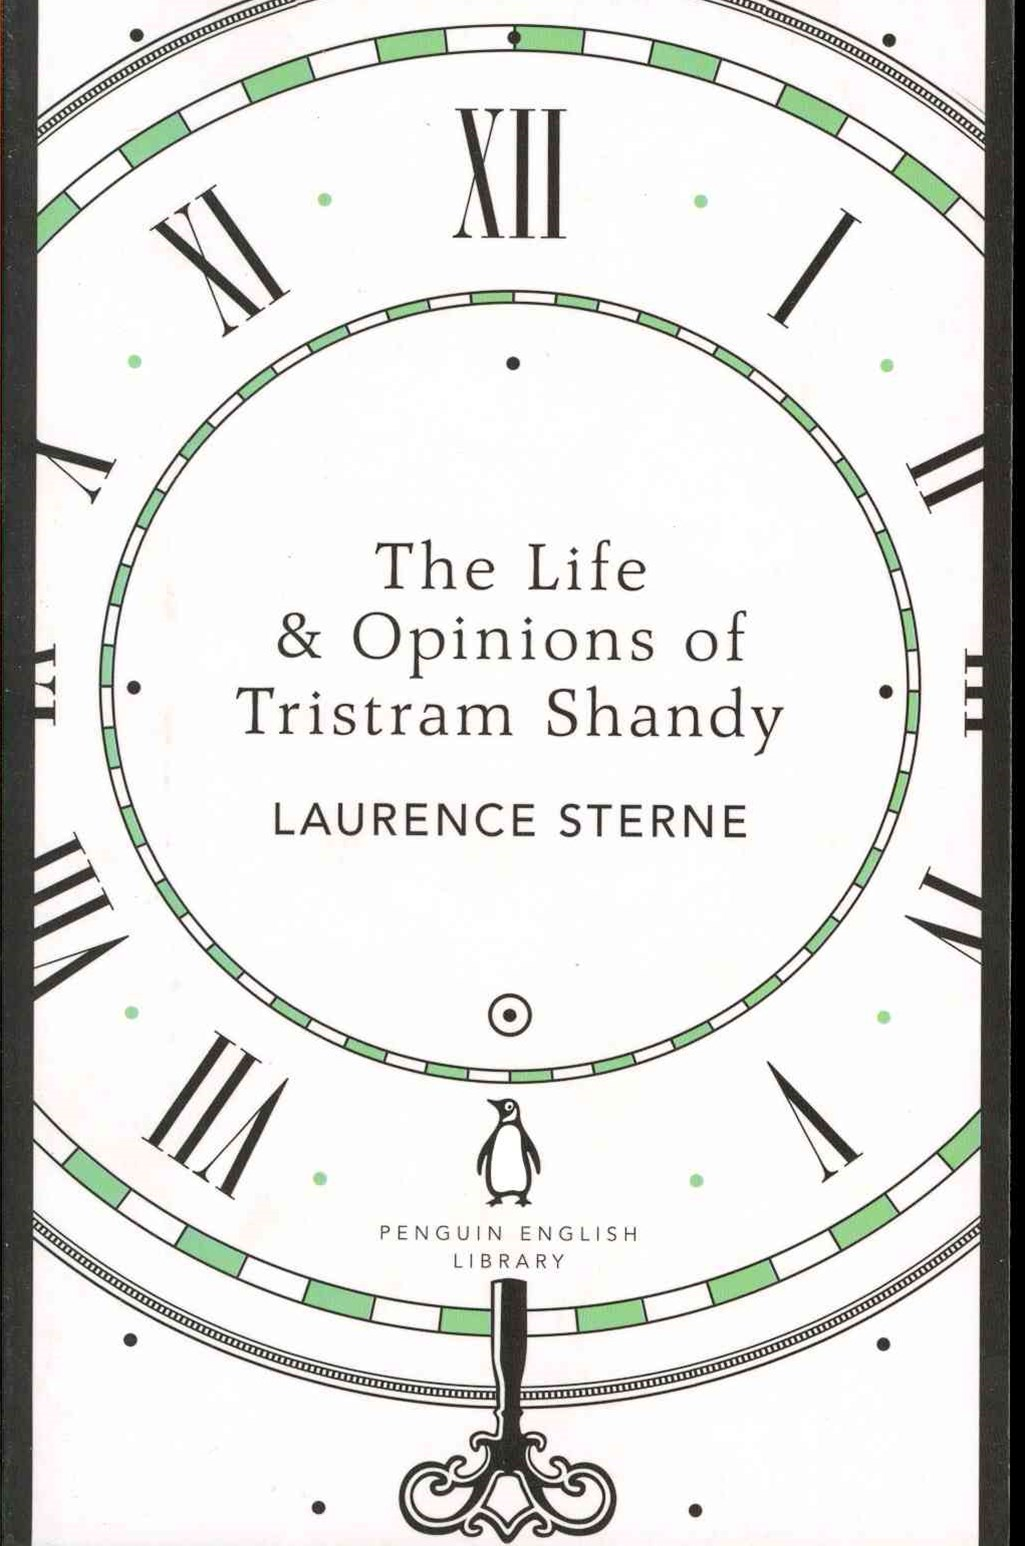 Life & Opinions Of Tristram Shandy, TheThe